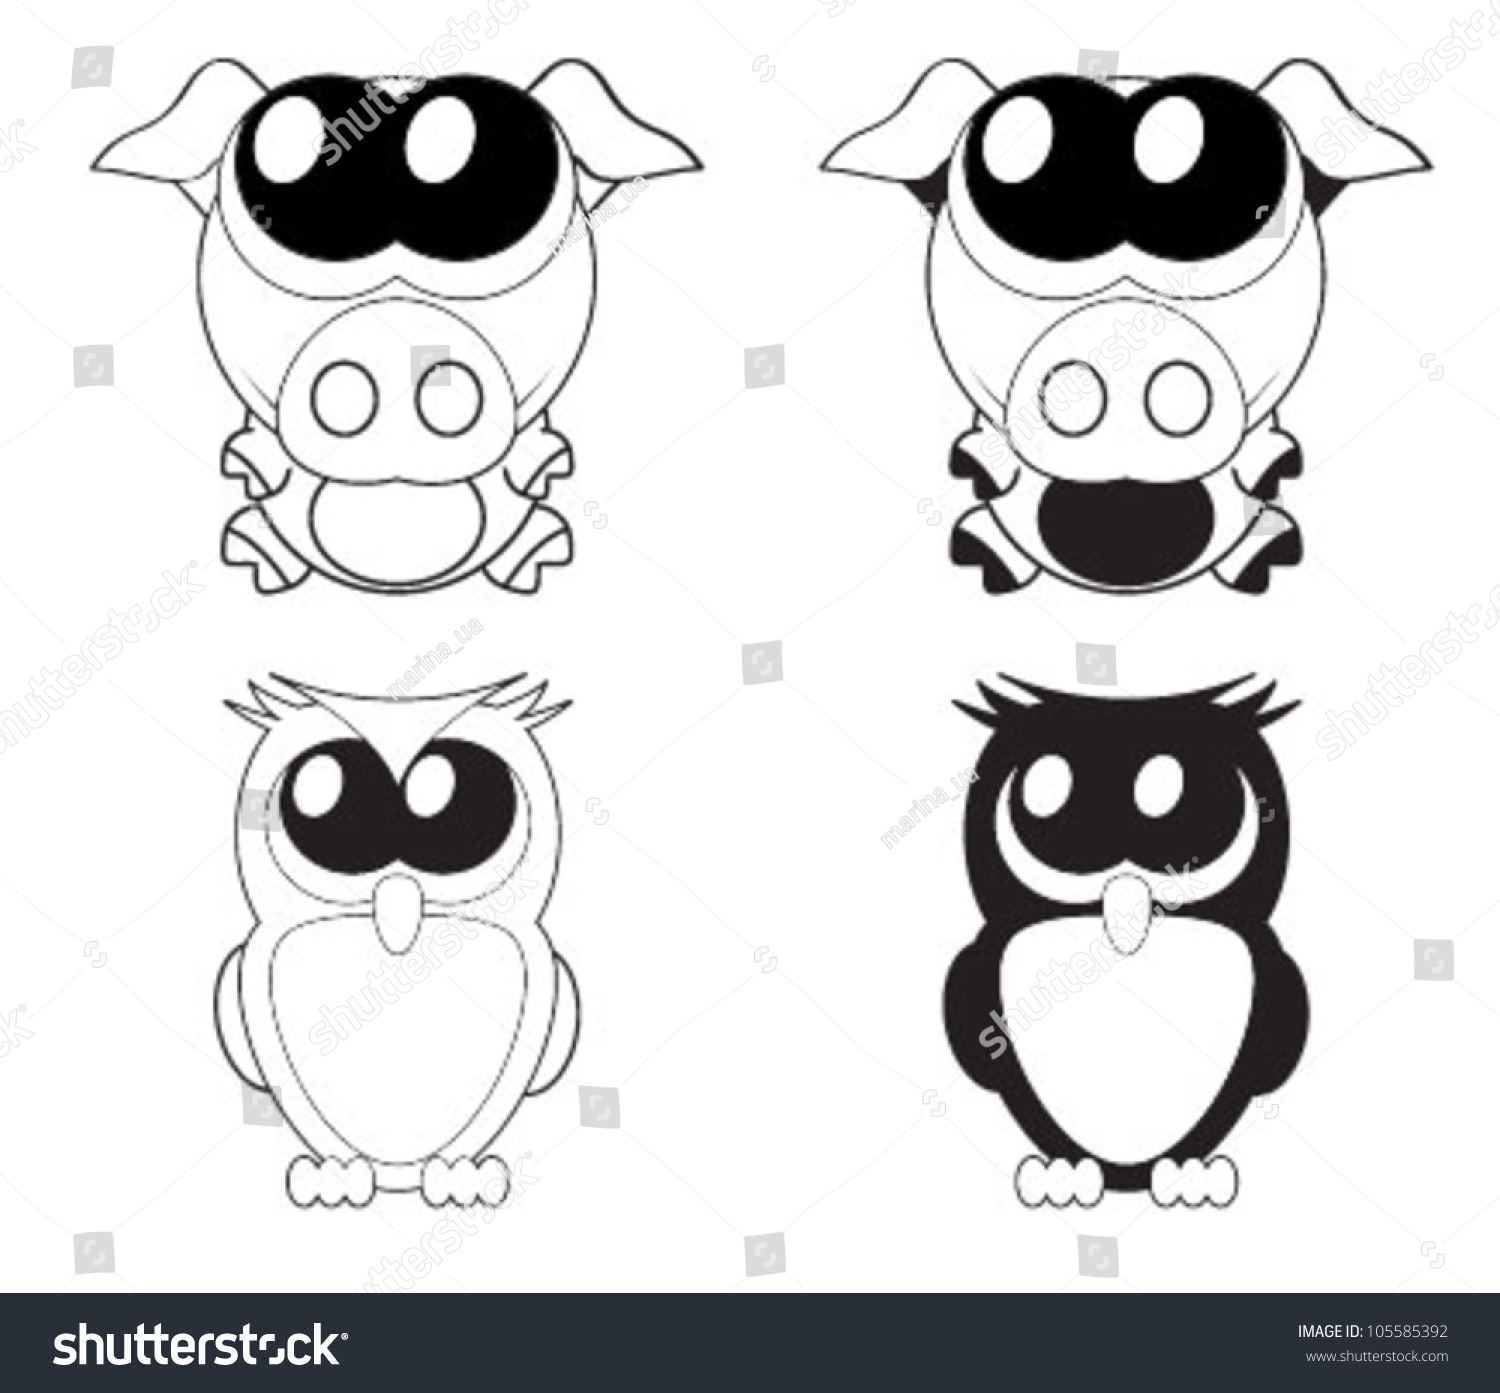 Cute Cartoon Pig And Owl With Big Eyes, Vector - 105585392 ... Cute Cartoon Pigs With Big Eyes